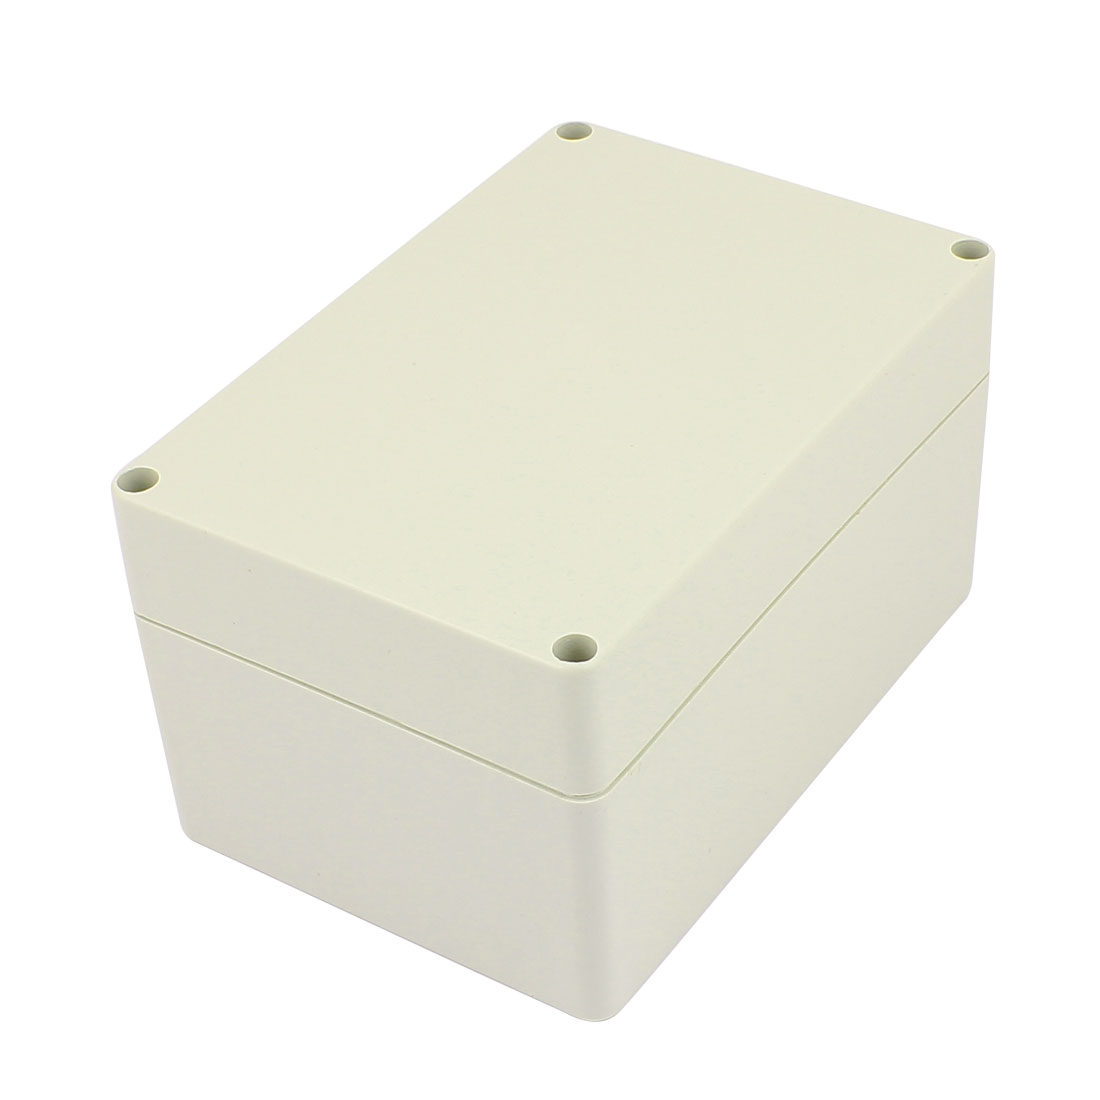 Dustproof IP65 Junction Box DIY Terminal Connection Enclosure Adaptable 152mm x 102mm x 82mm